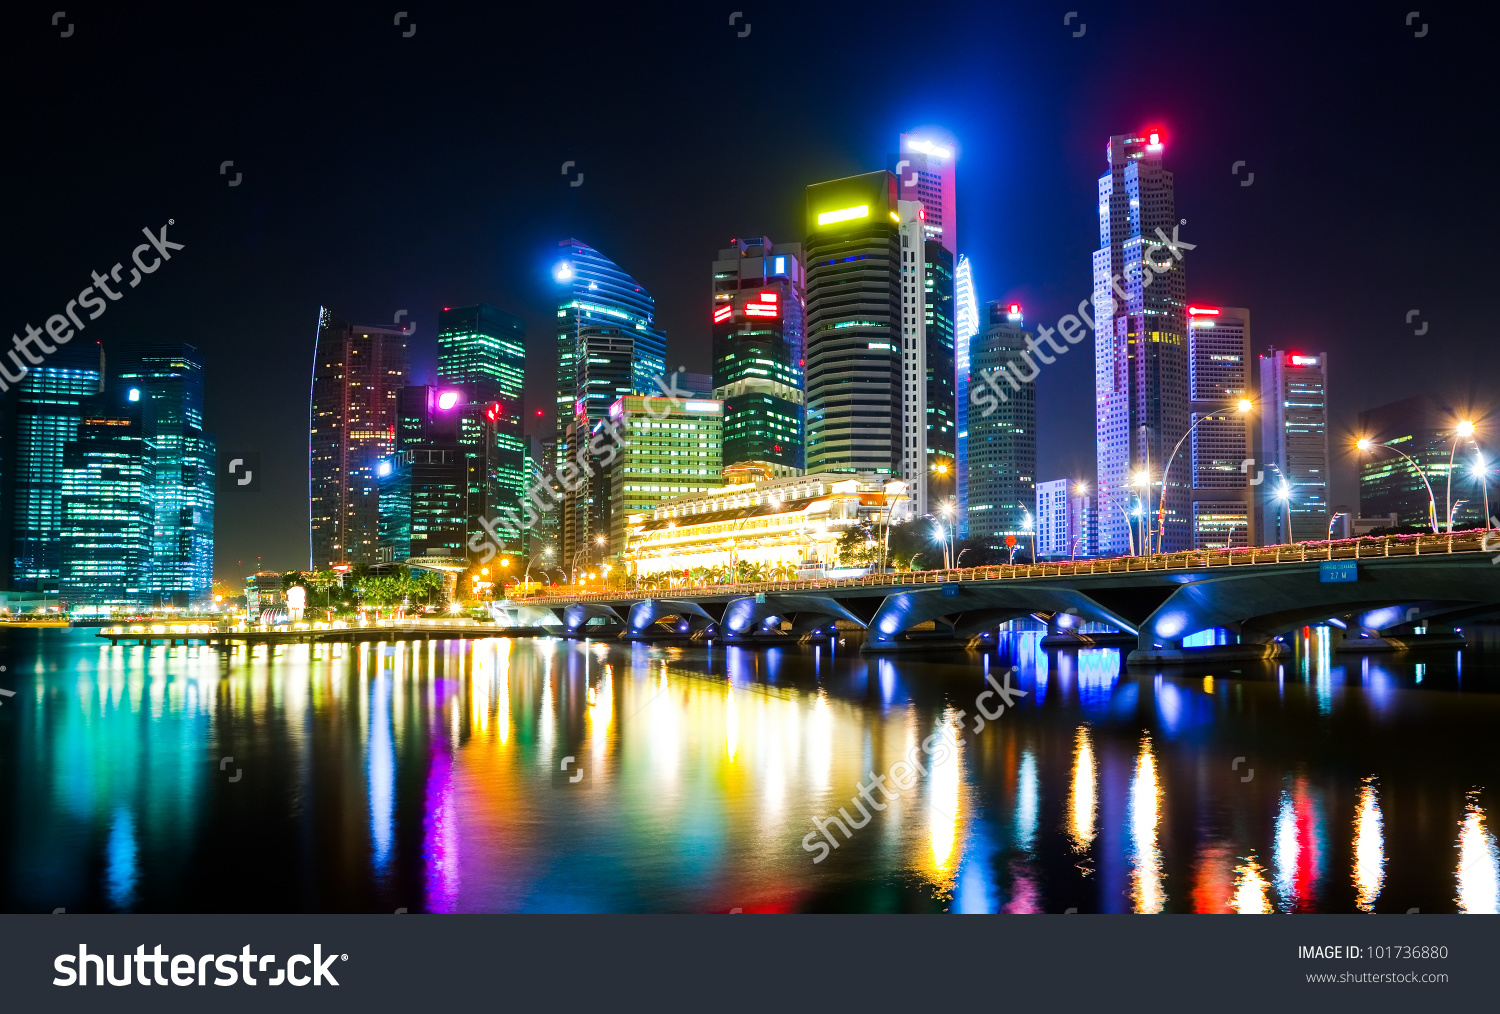 Night View City Artificial Light Reflecting Stock Photo 101736880.